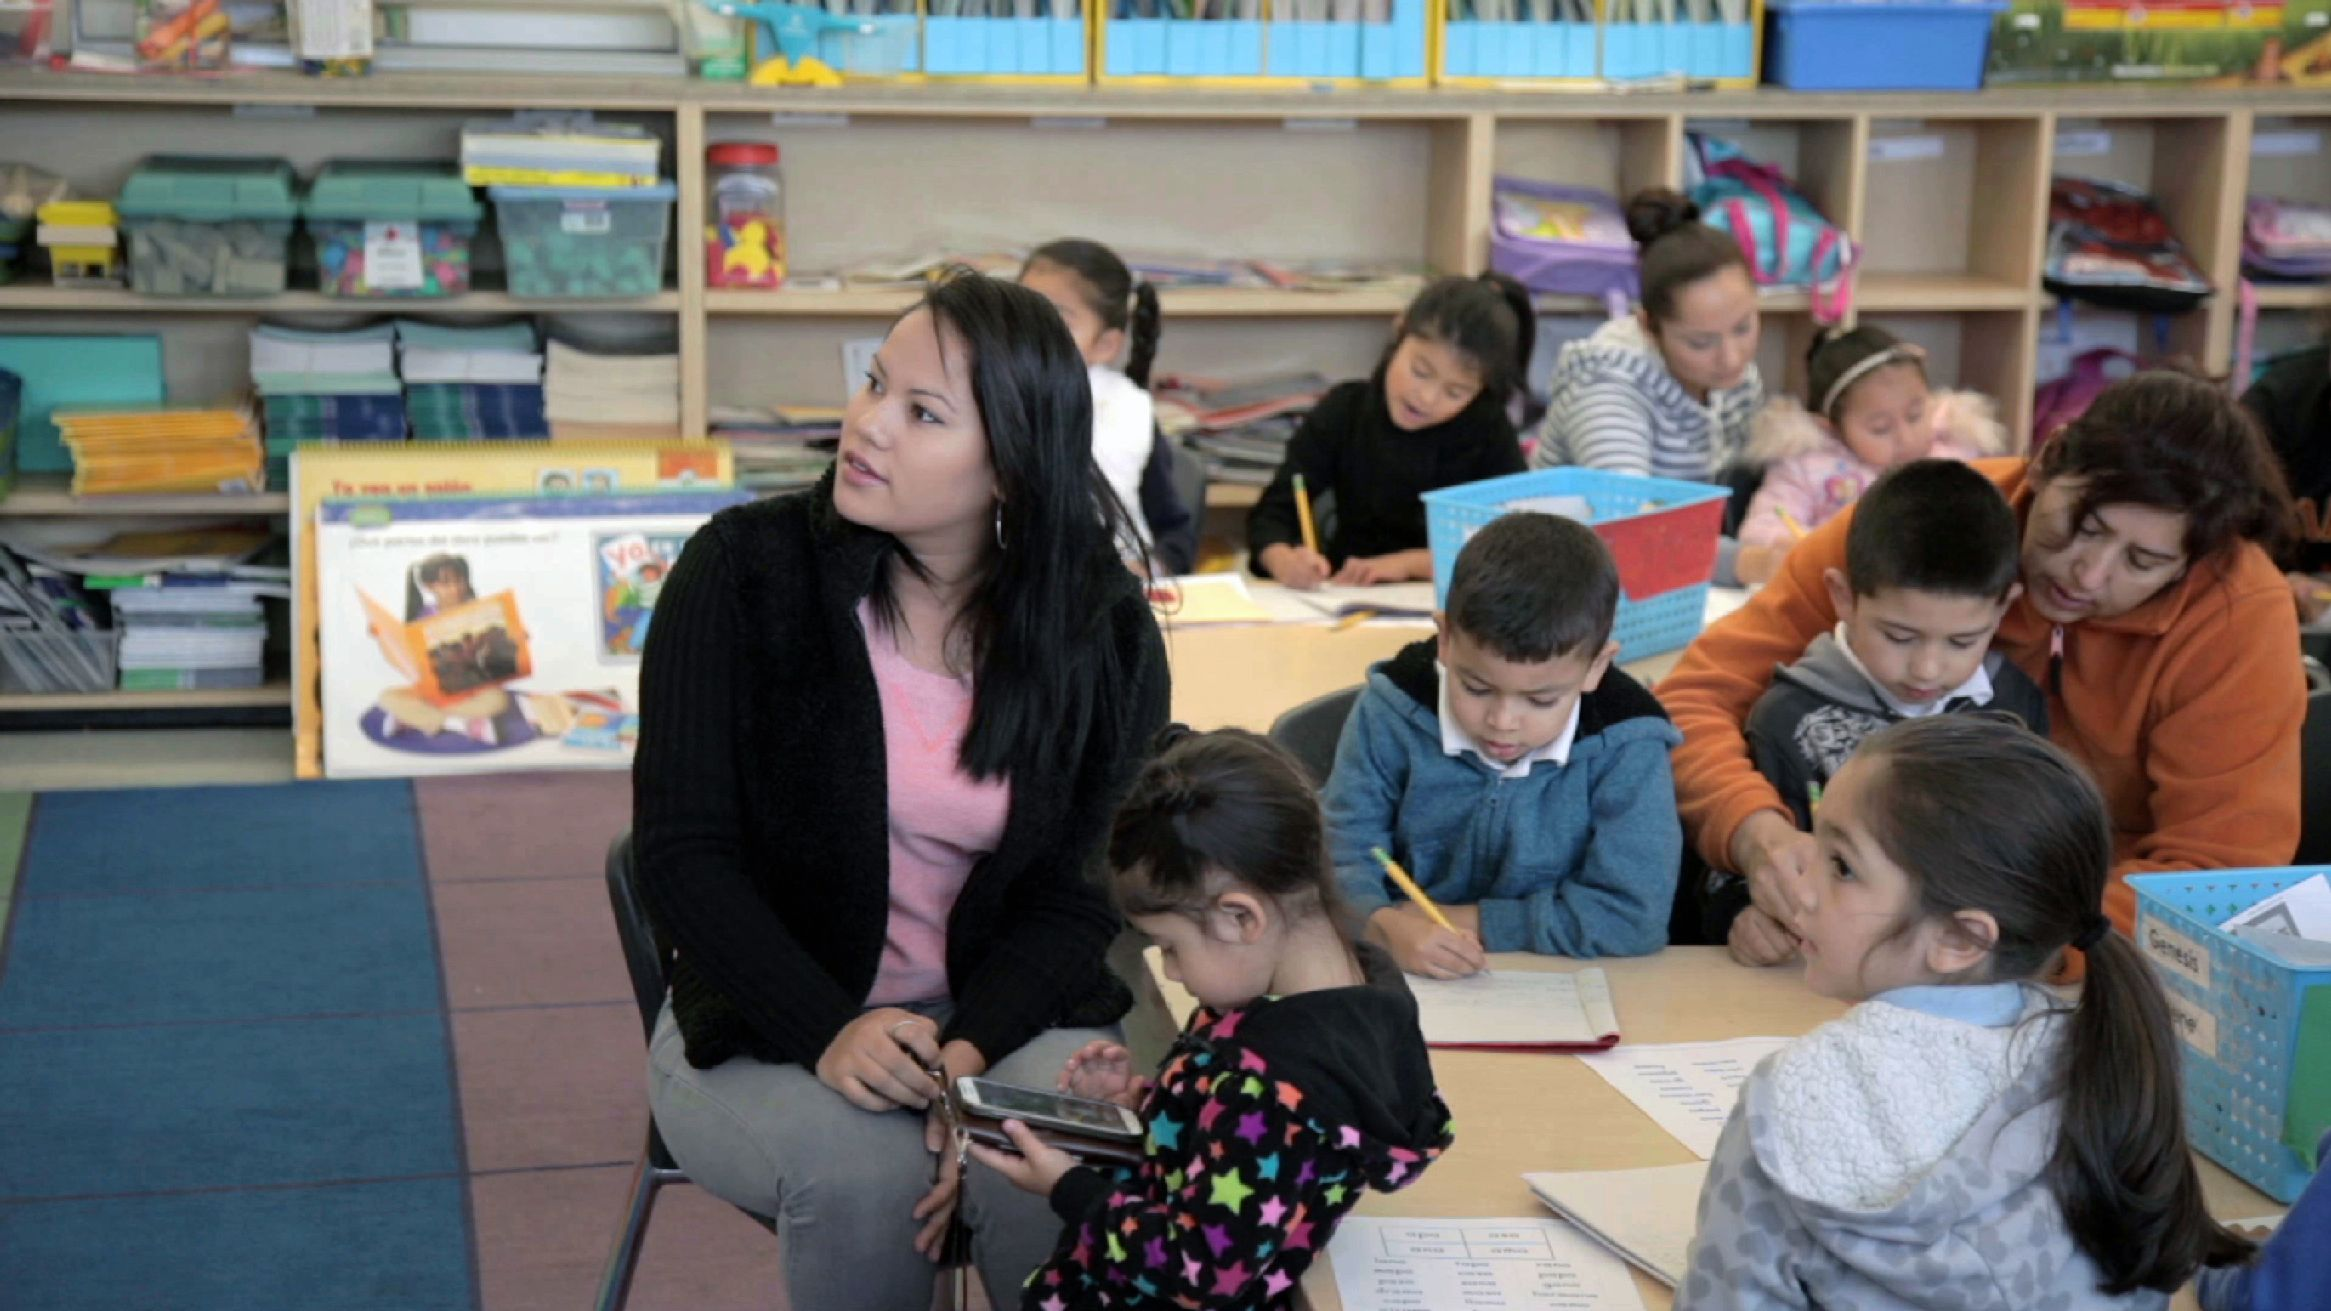 Teacher is teaching a group of primary students in a classroom.